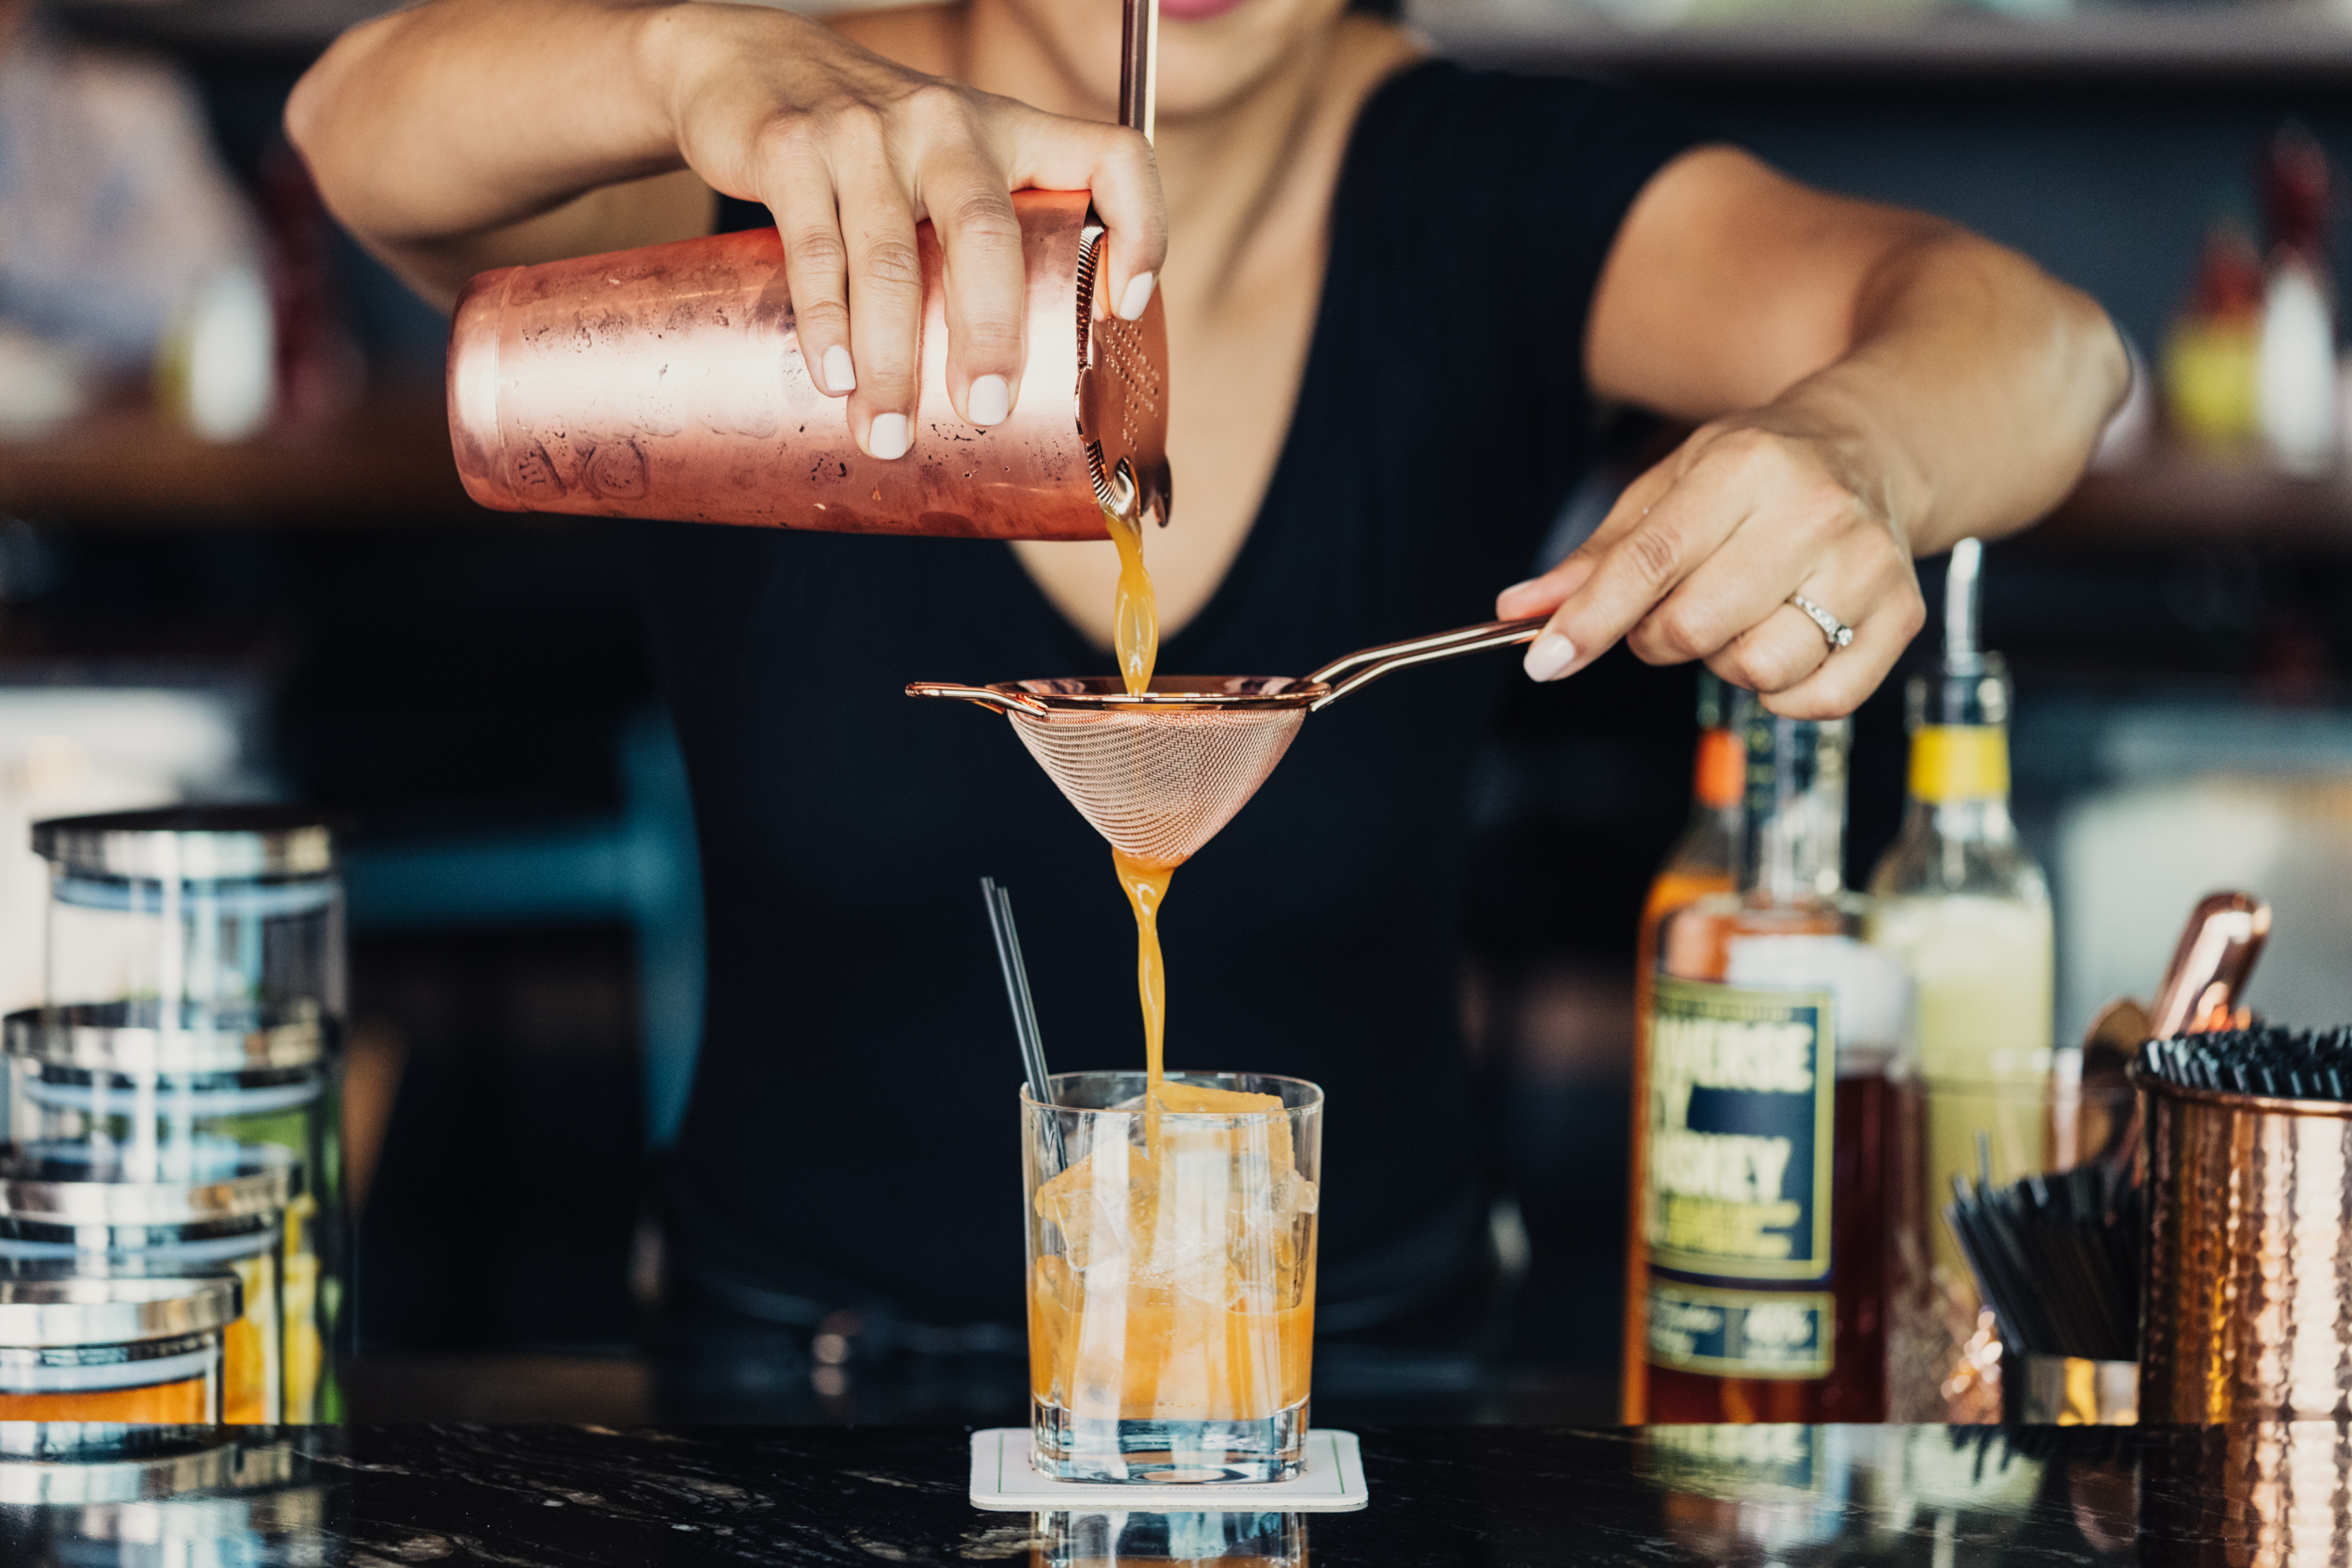 the-times-we-are-the-times-creative-agency-chicago-food-photography-cocktail-photos.jpg